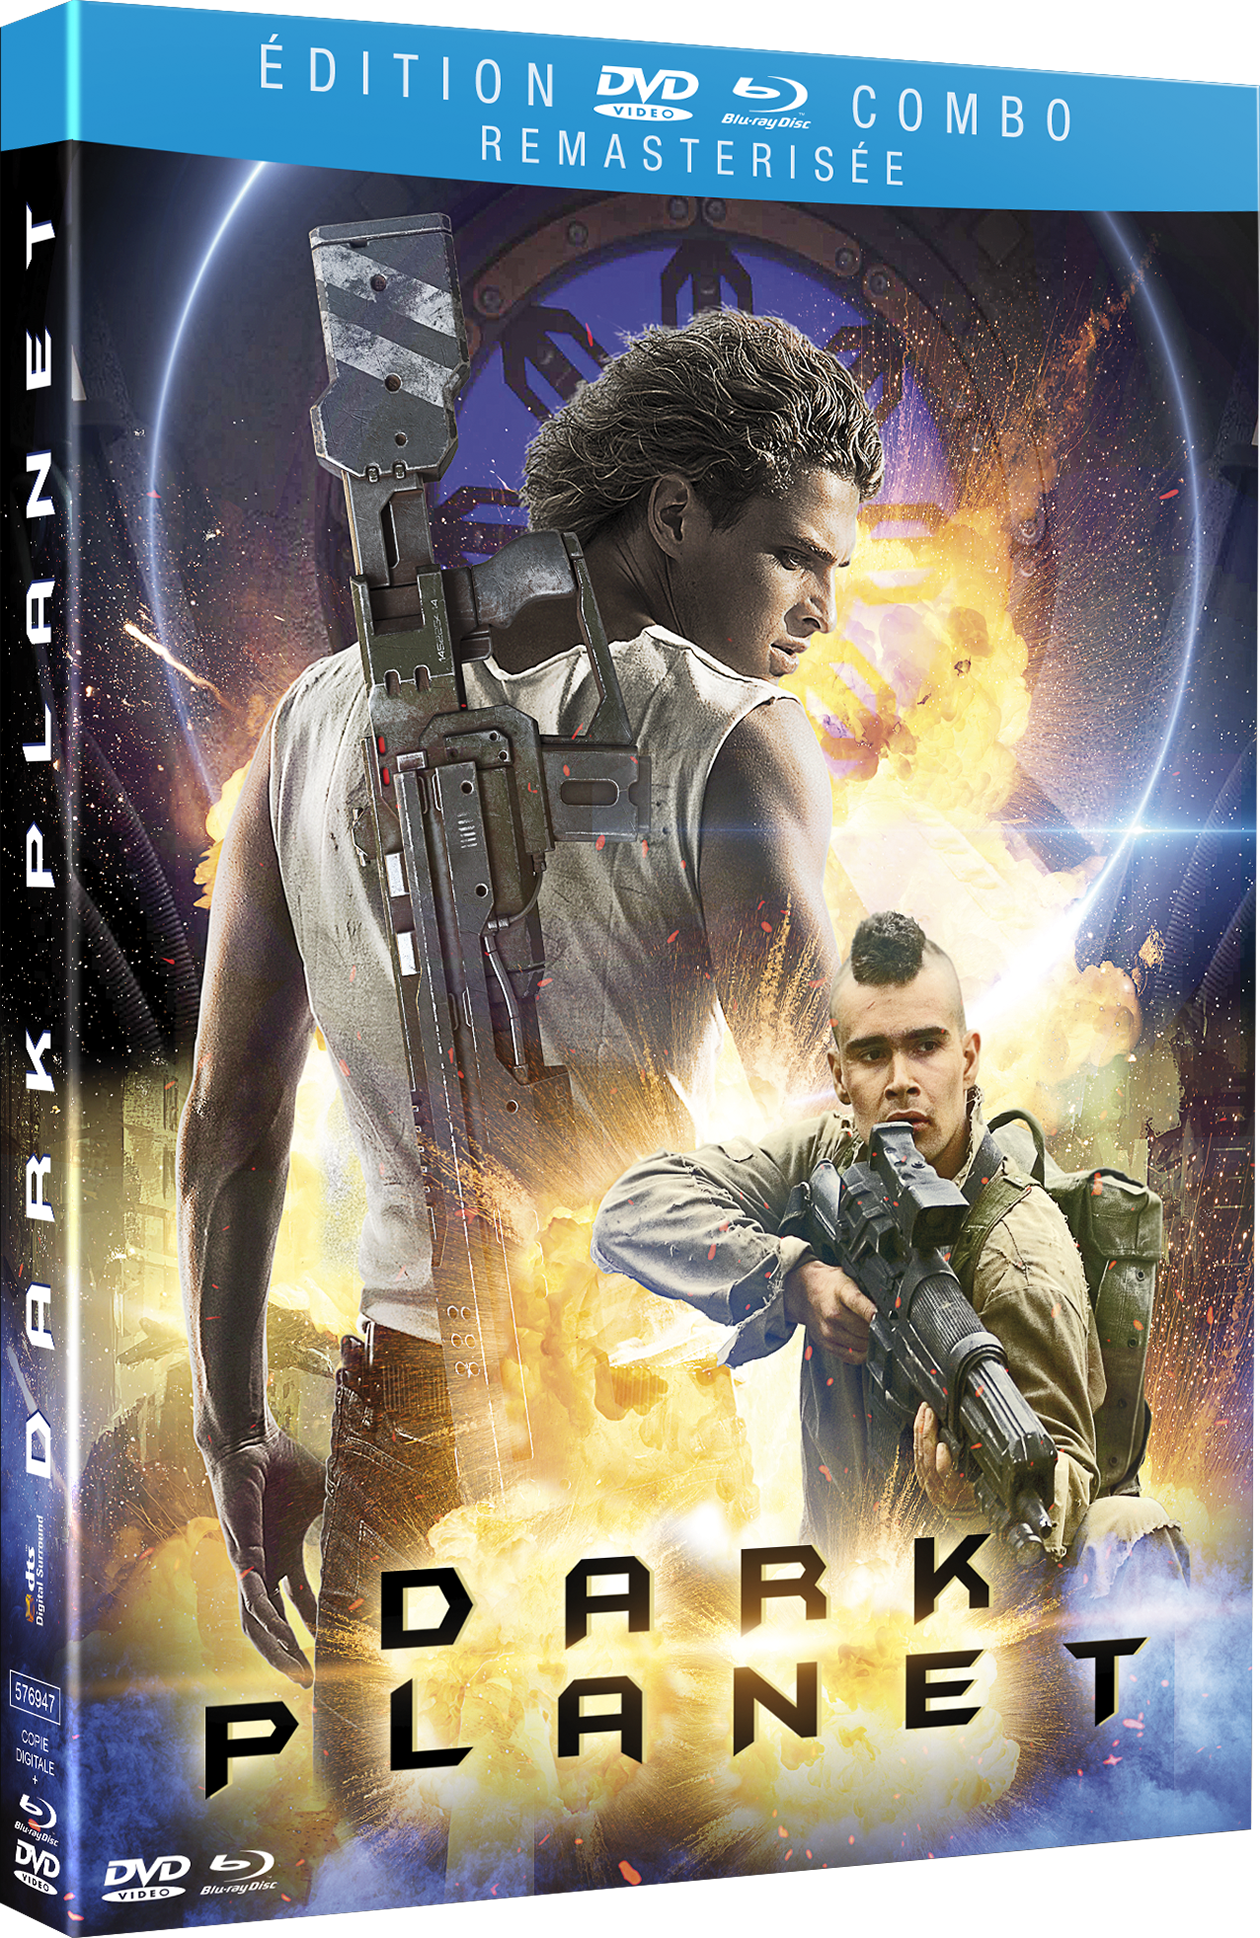 DARK PLANET - DVD + BLU-RAY